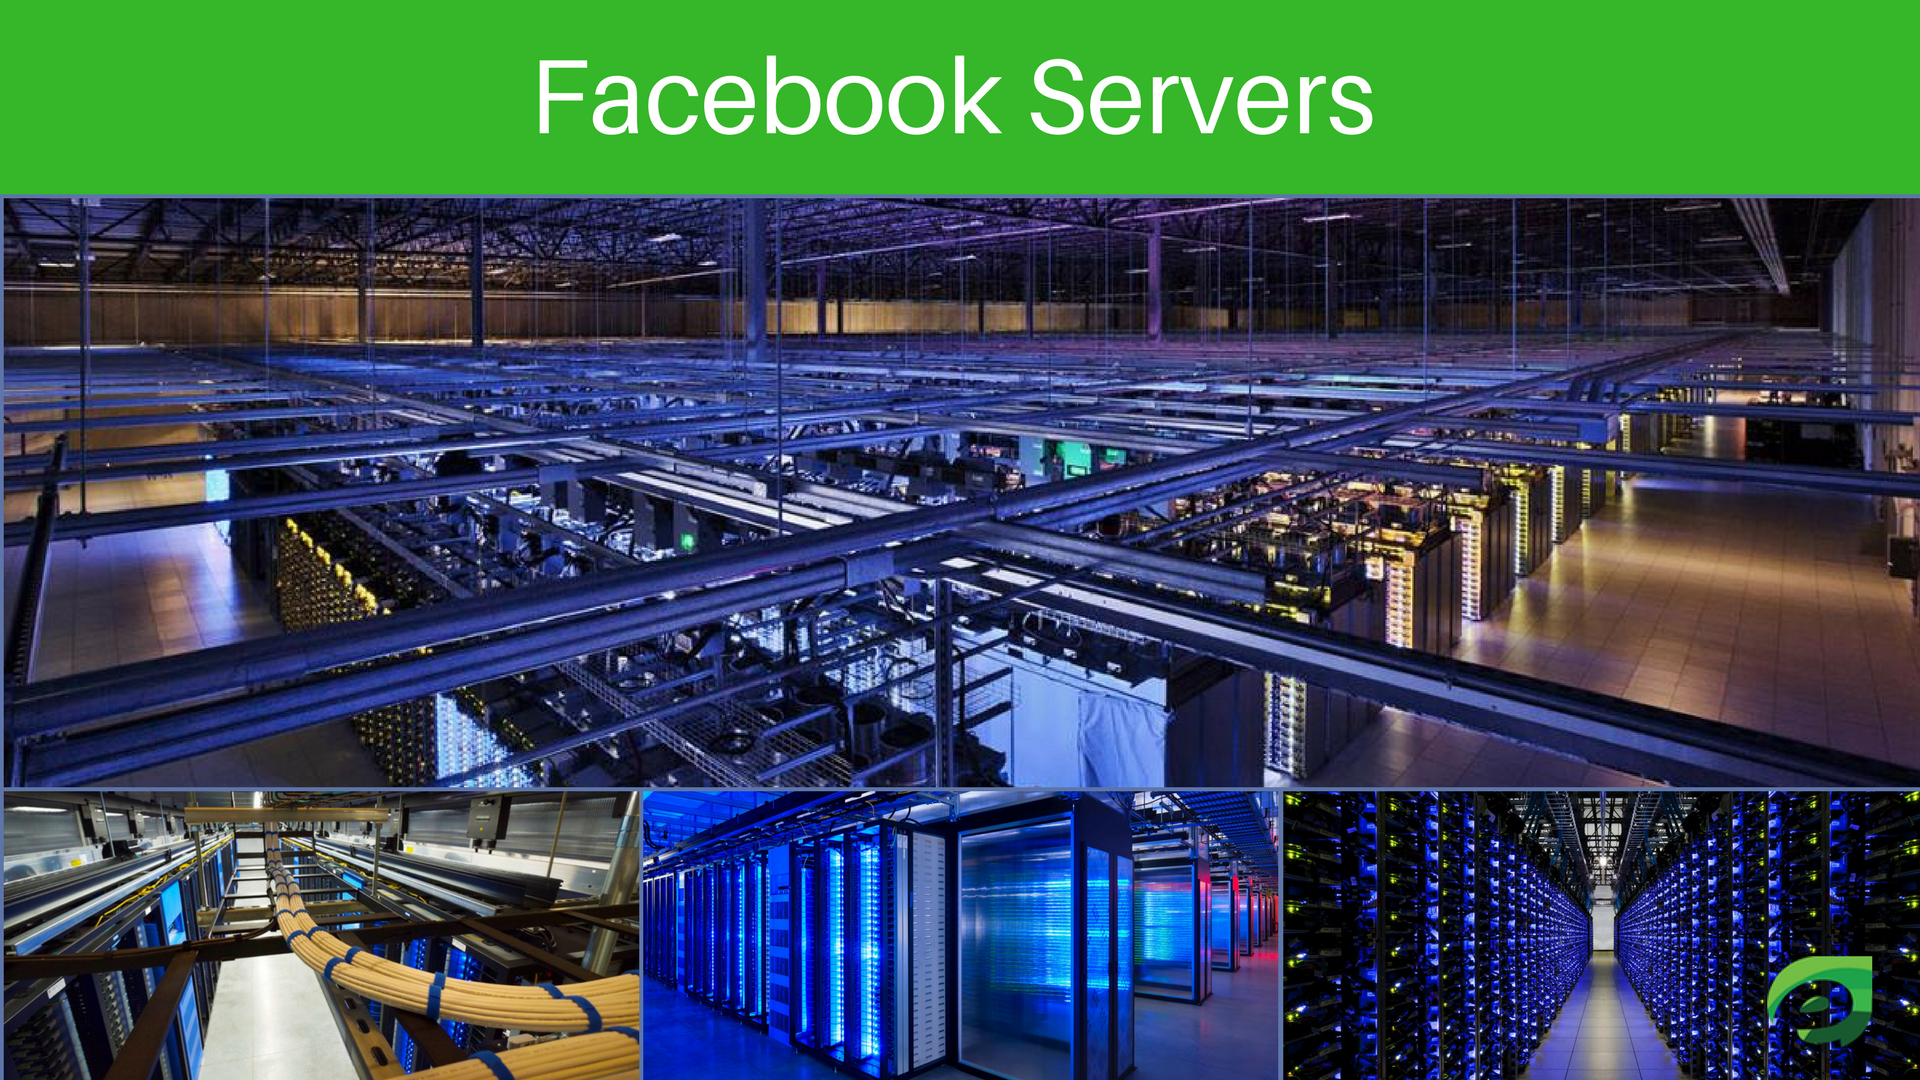 Facebook Servers - How Facebook Works